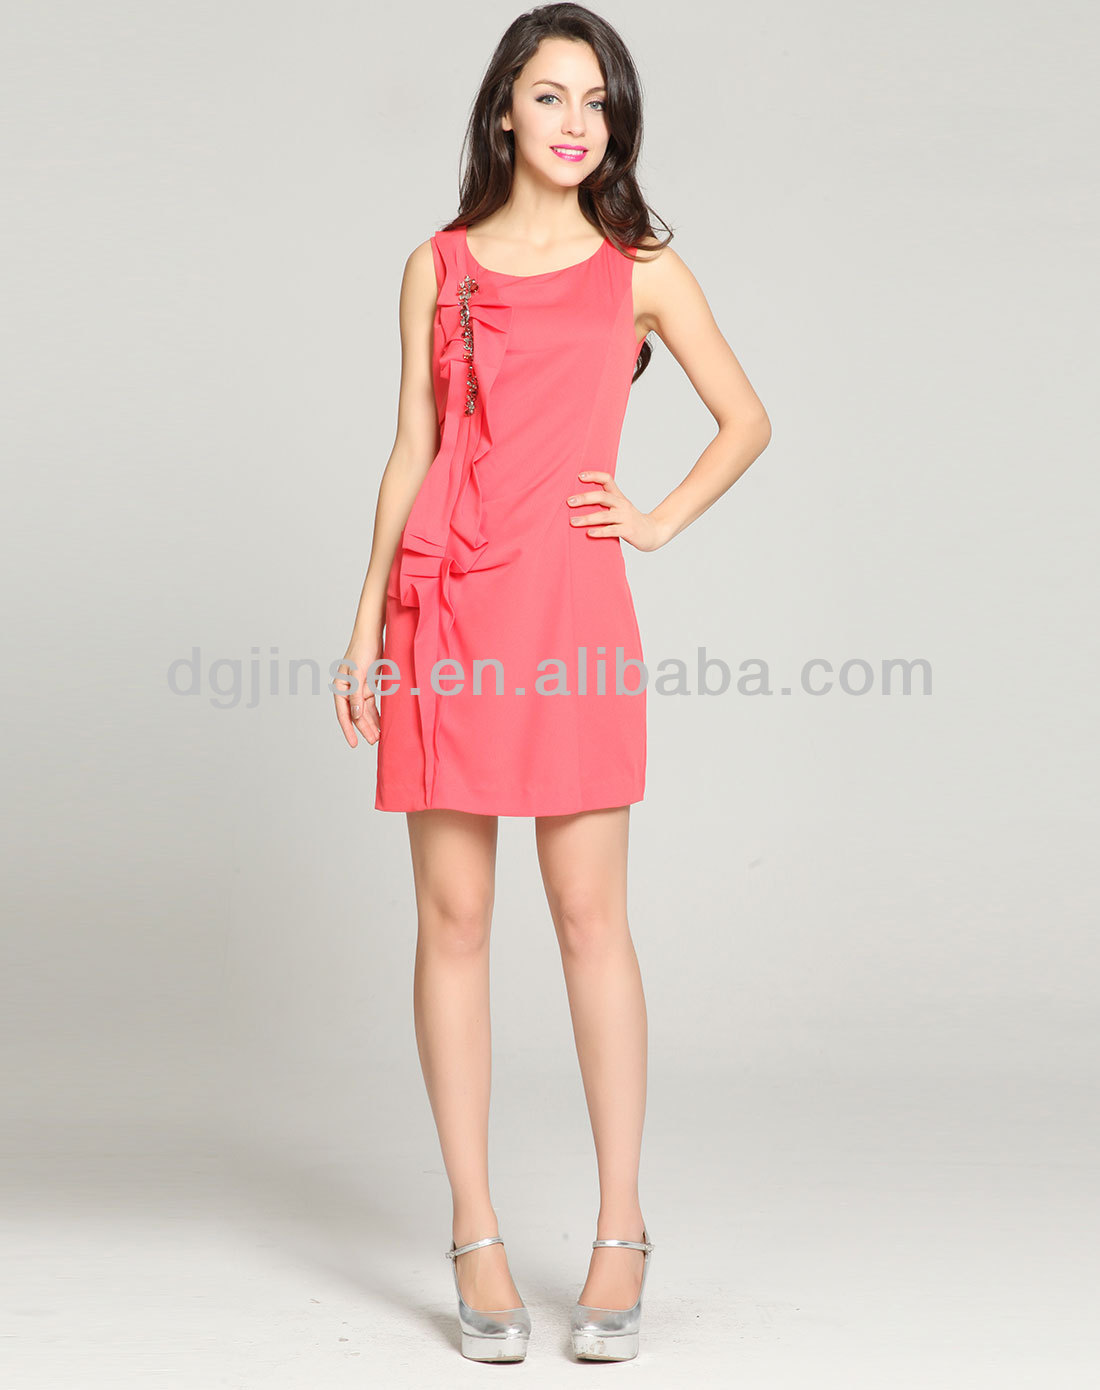 Alibaba Ladies red sexy mature party wedding dress